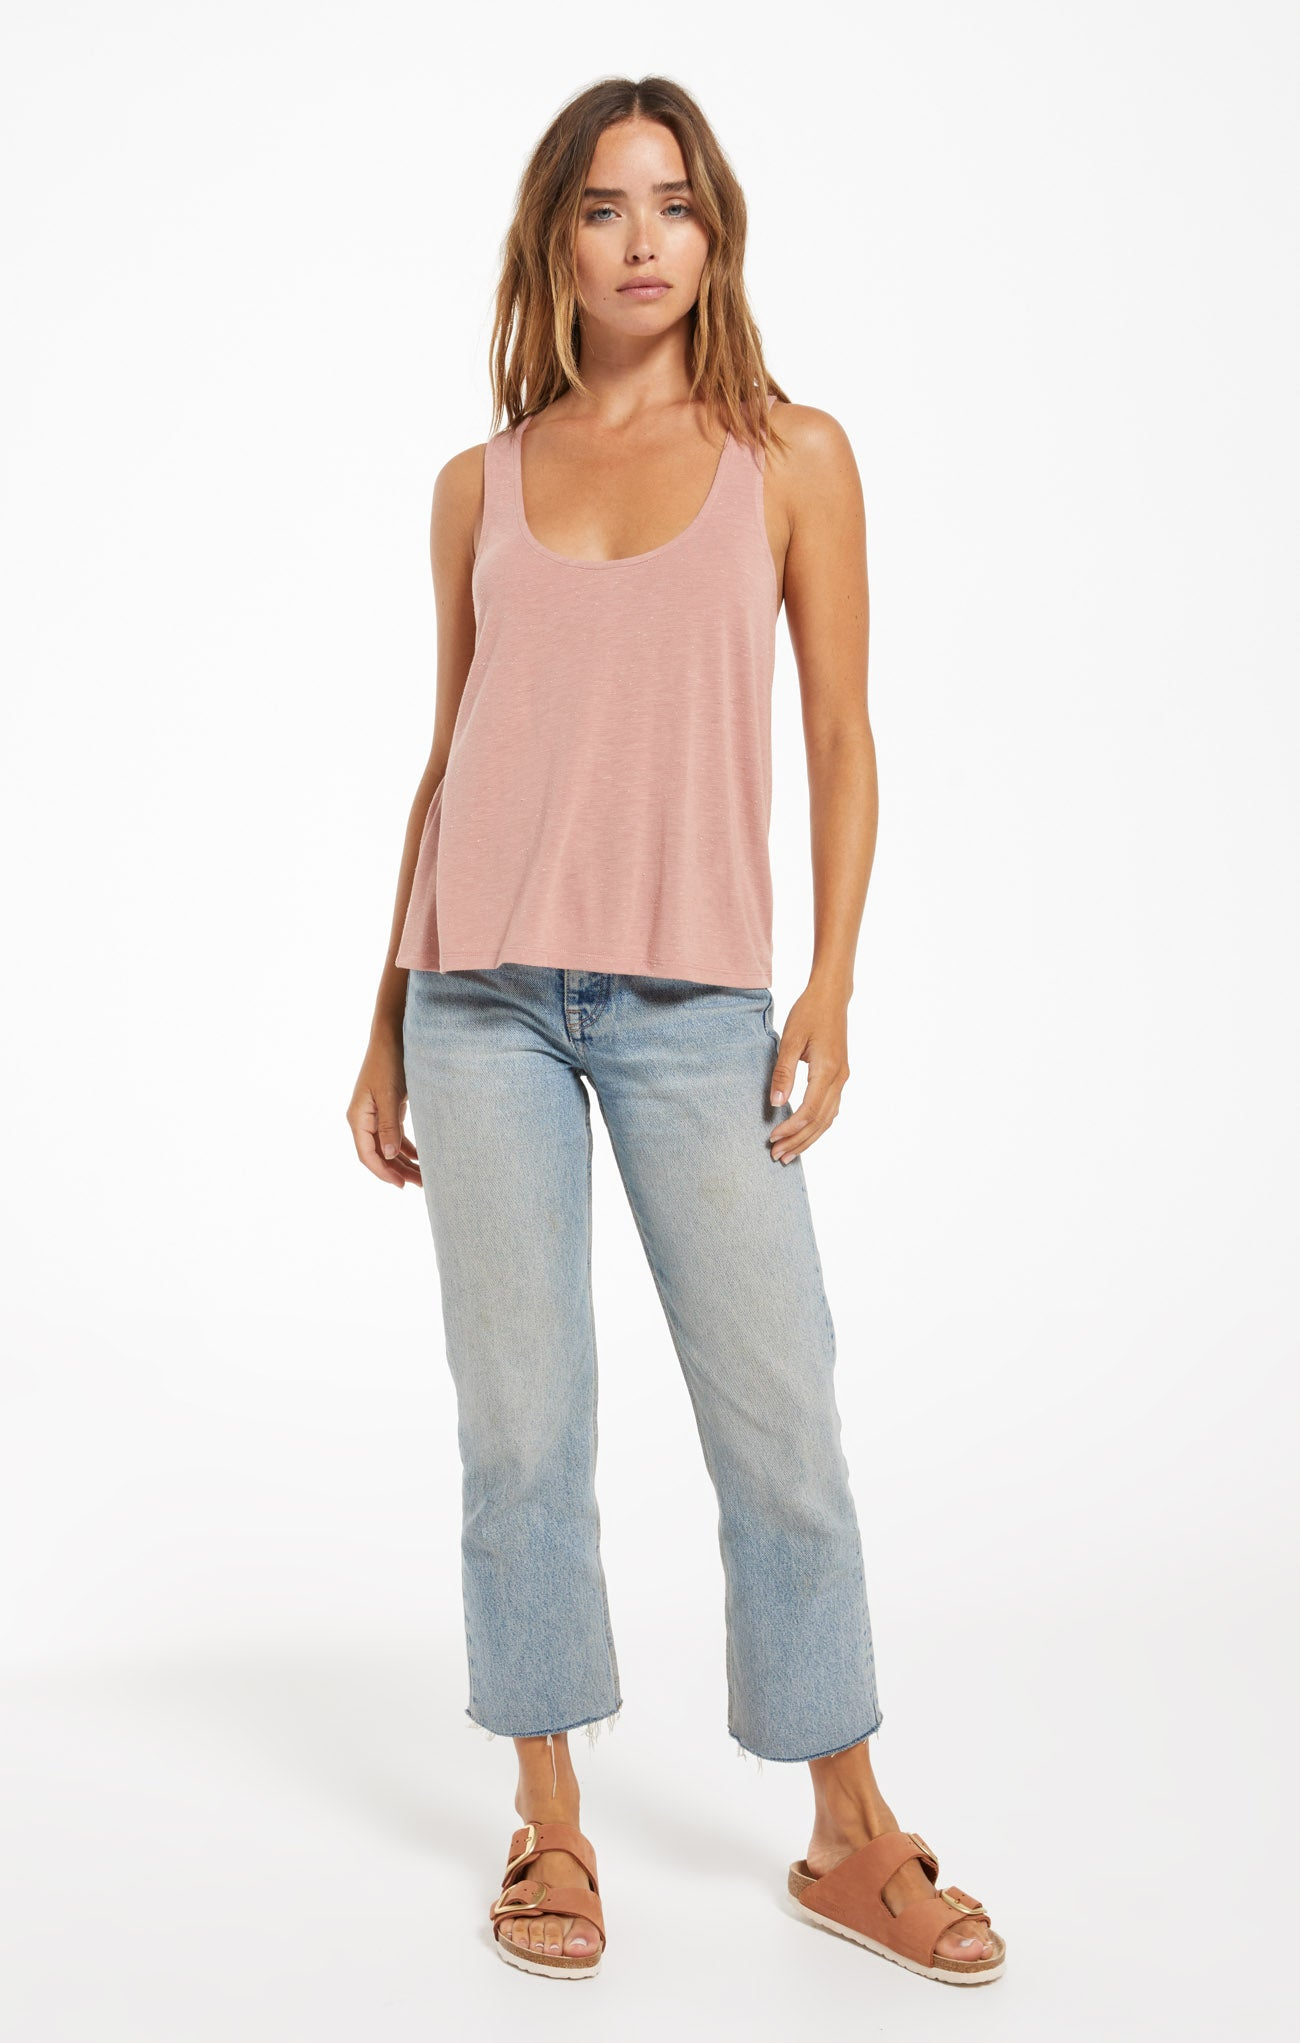 Tops Sloane Racer Back Speckle Tank Wild Rose